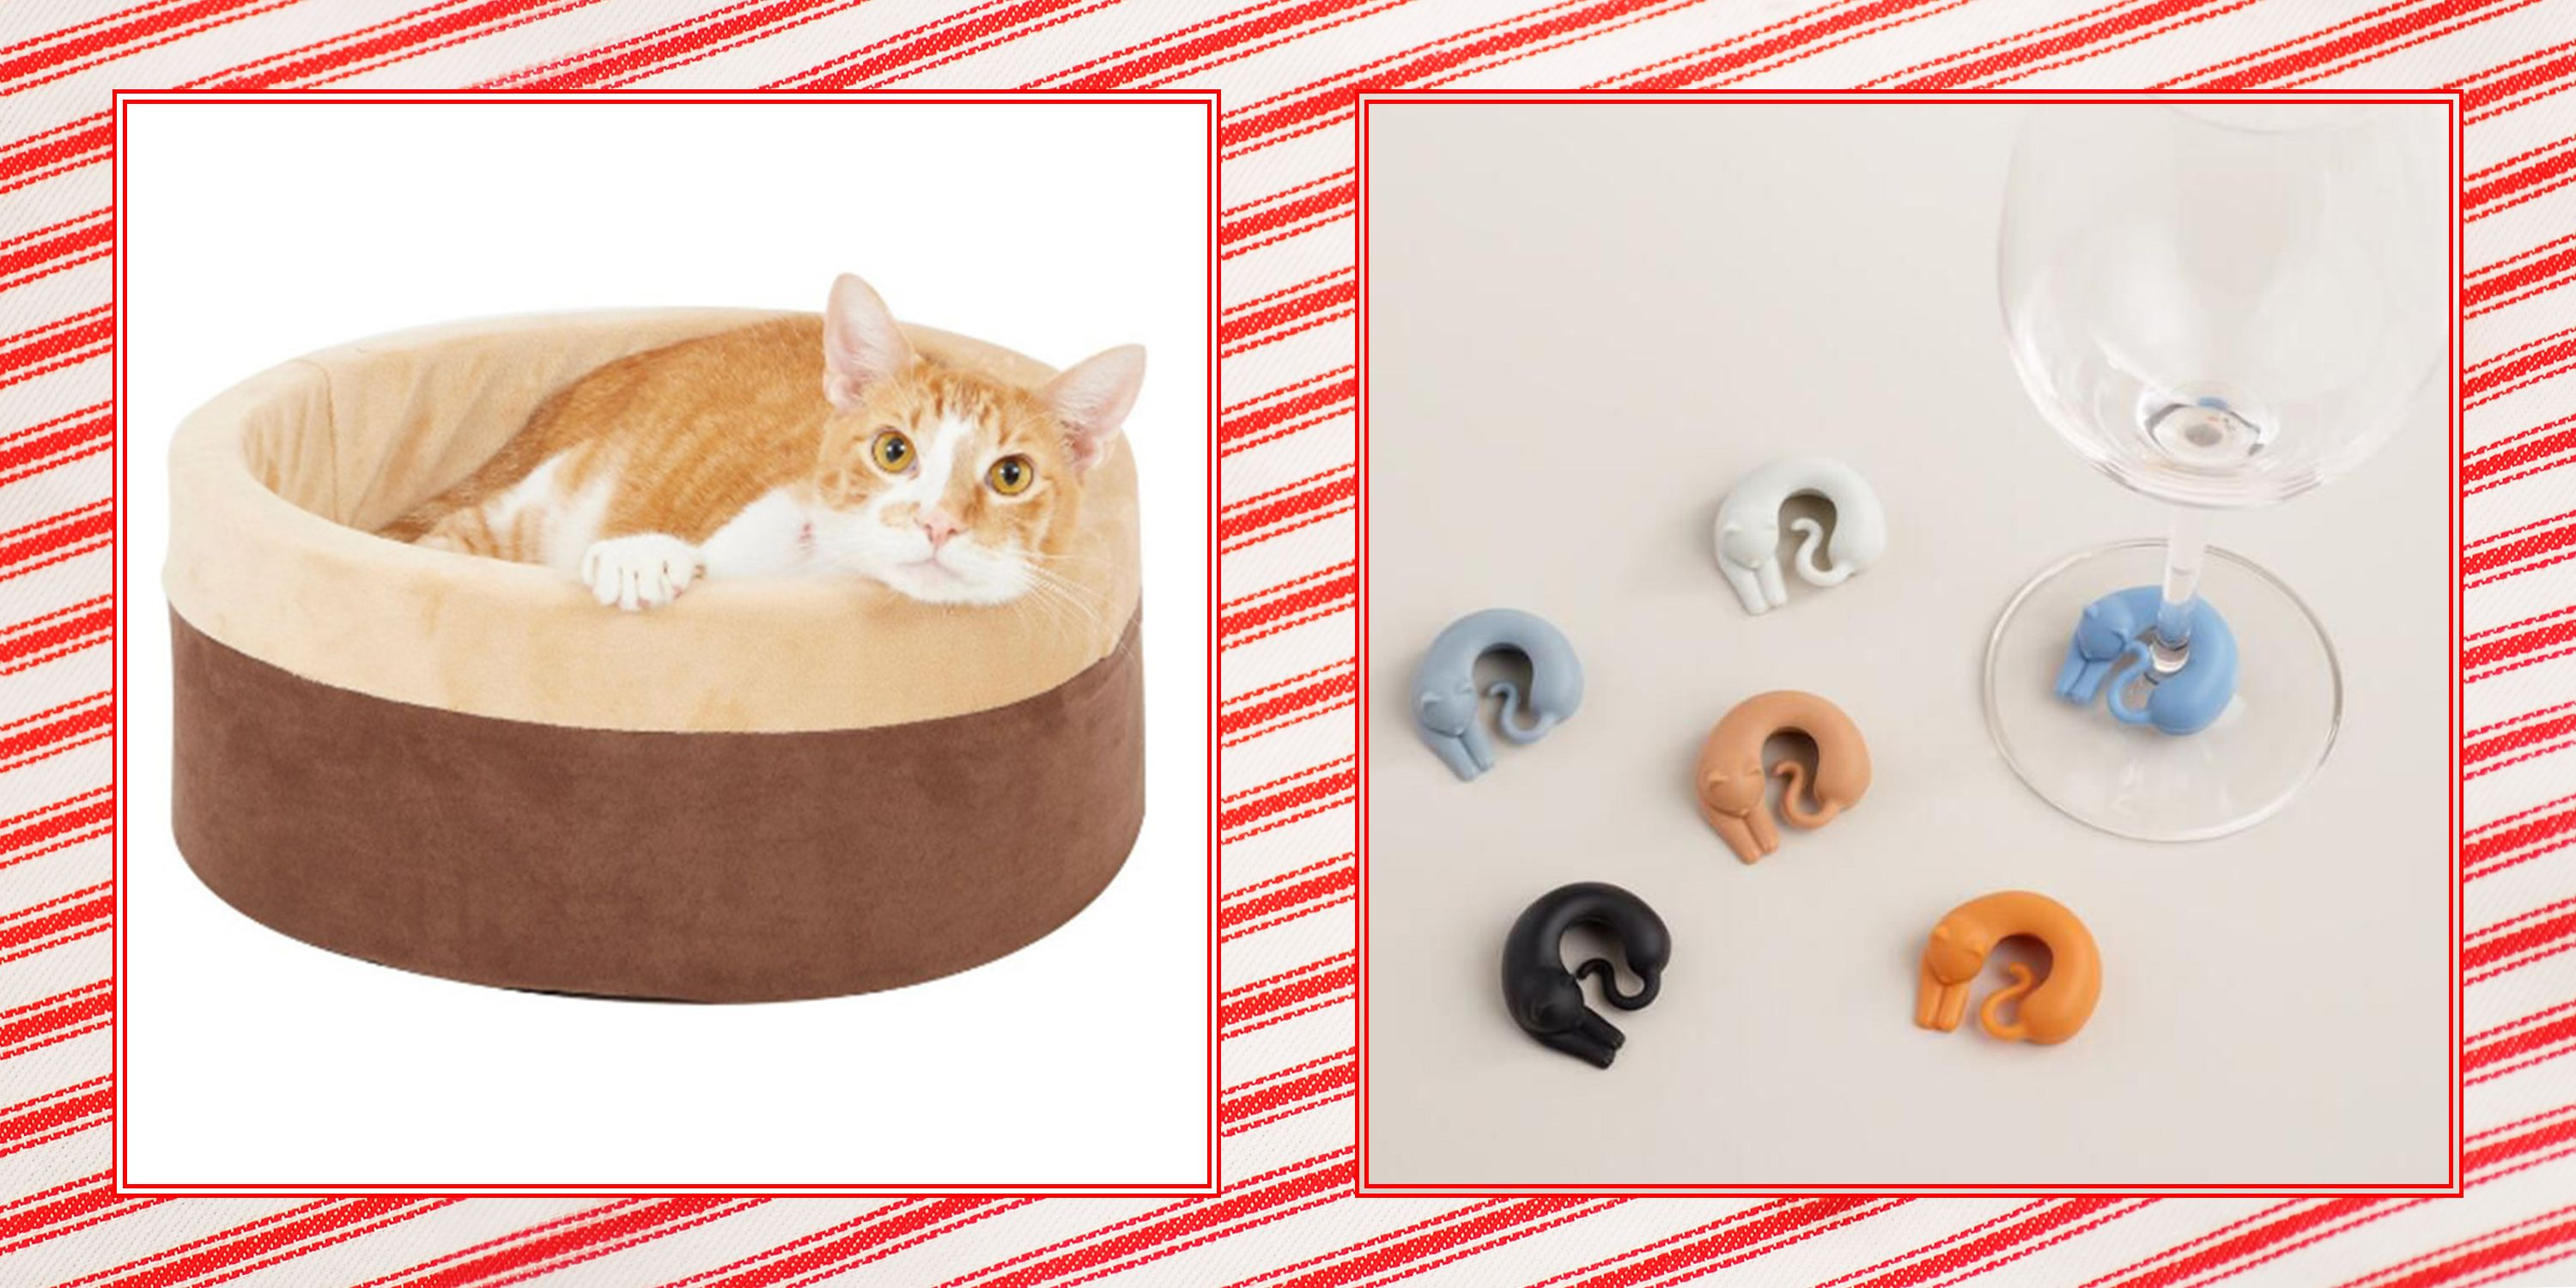 cat lover gifts  sc 1 st  Country Living Magazine & 30 Unique Gifts for Cat Lovers - Funny Cat-Themed Gifts for Her